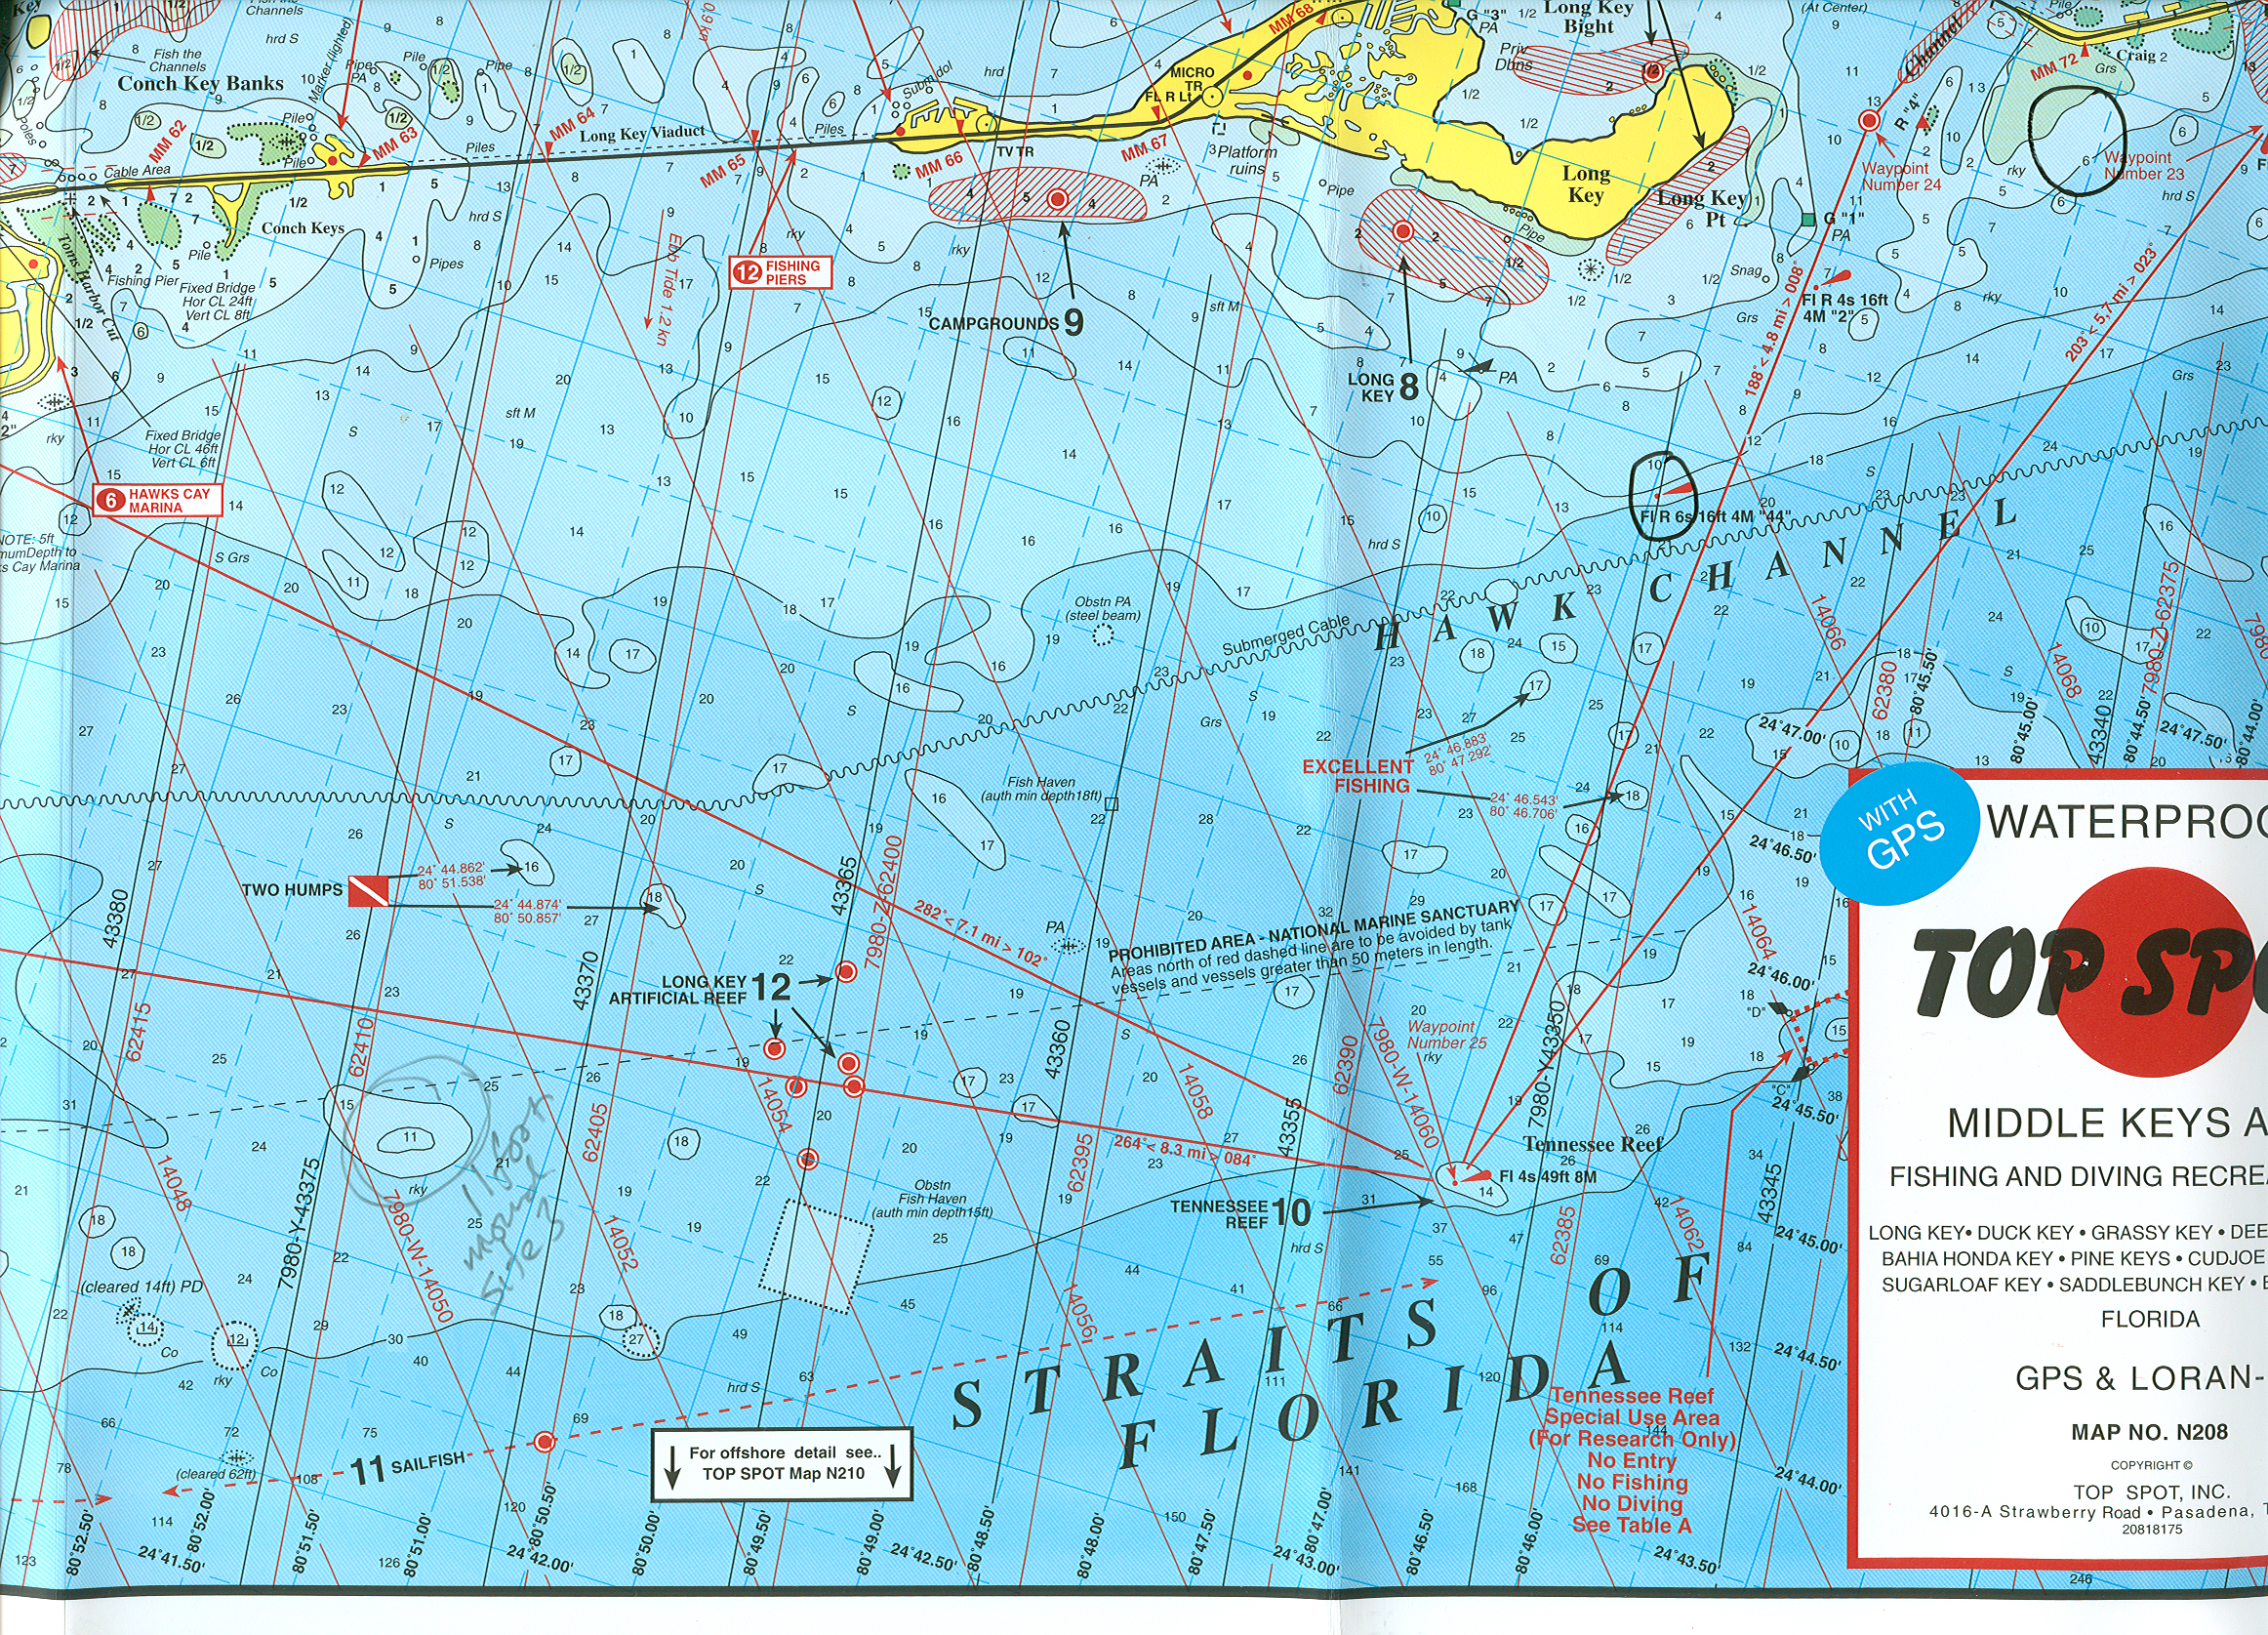 Research At SUNYESF Coral Reefs In The Florida Keys Florida Keys - Florida keys map pdf